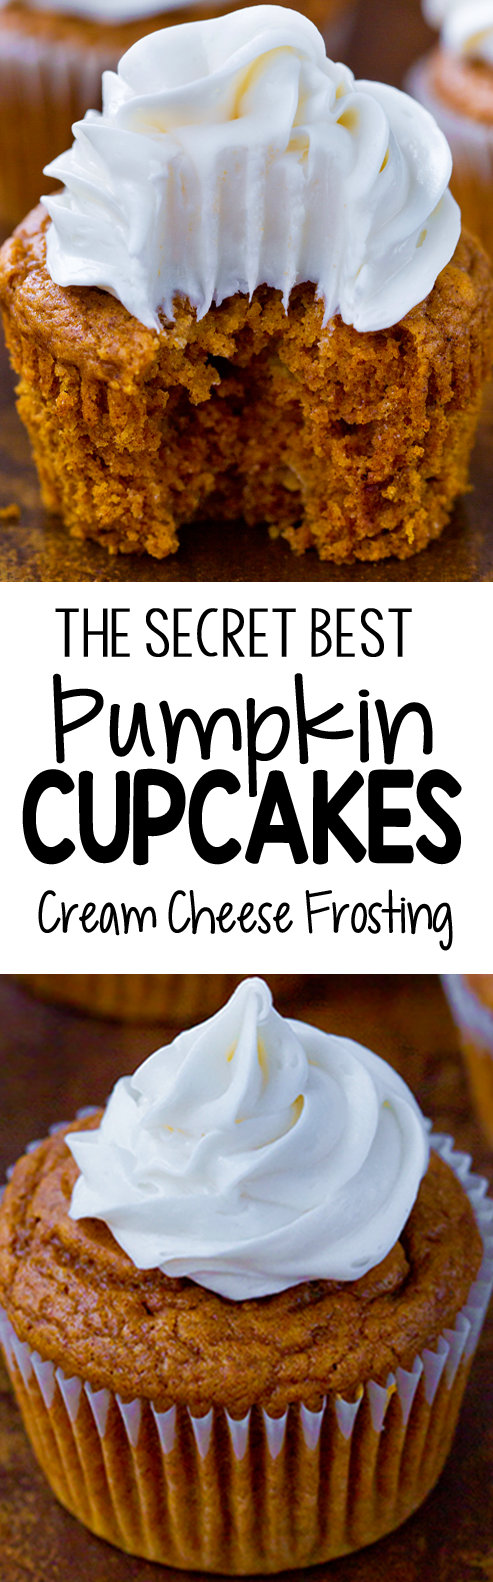 The Secret Best Pumpkin Cupcake Recipe